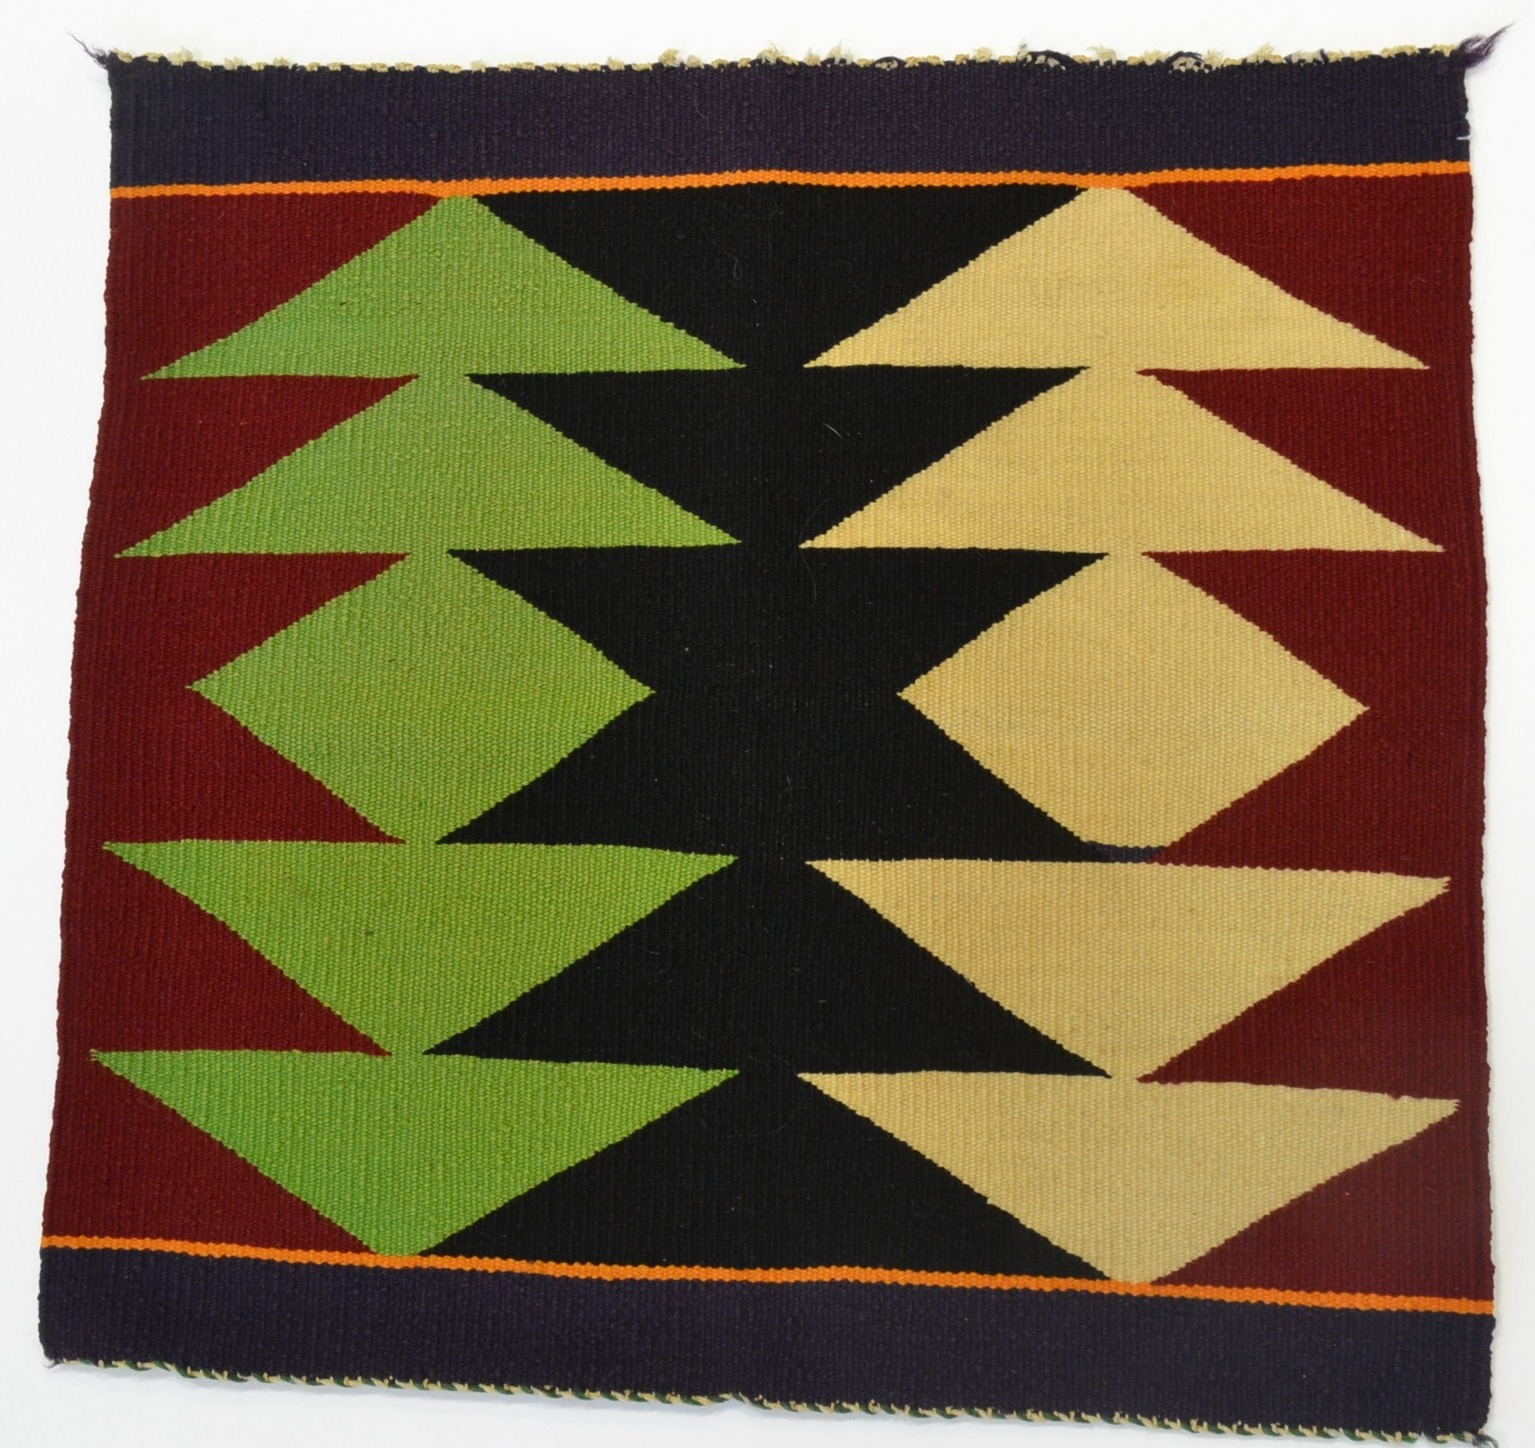 native american rugs Navajo Germantown rug